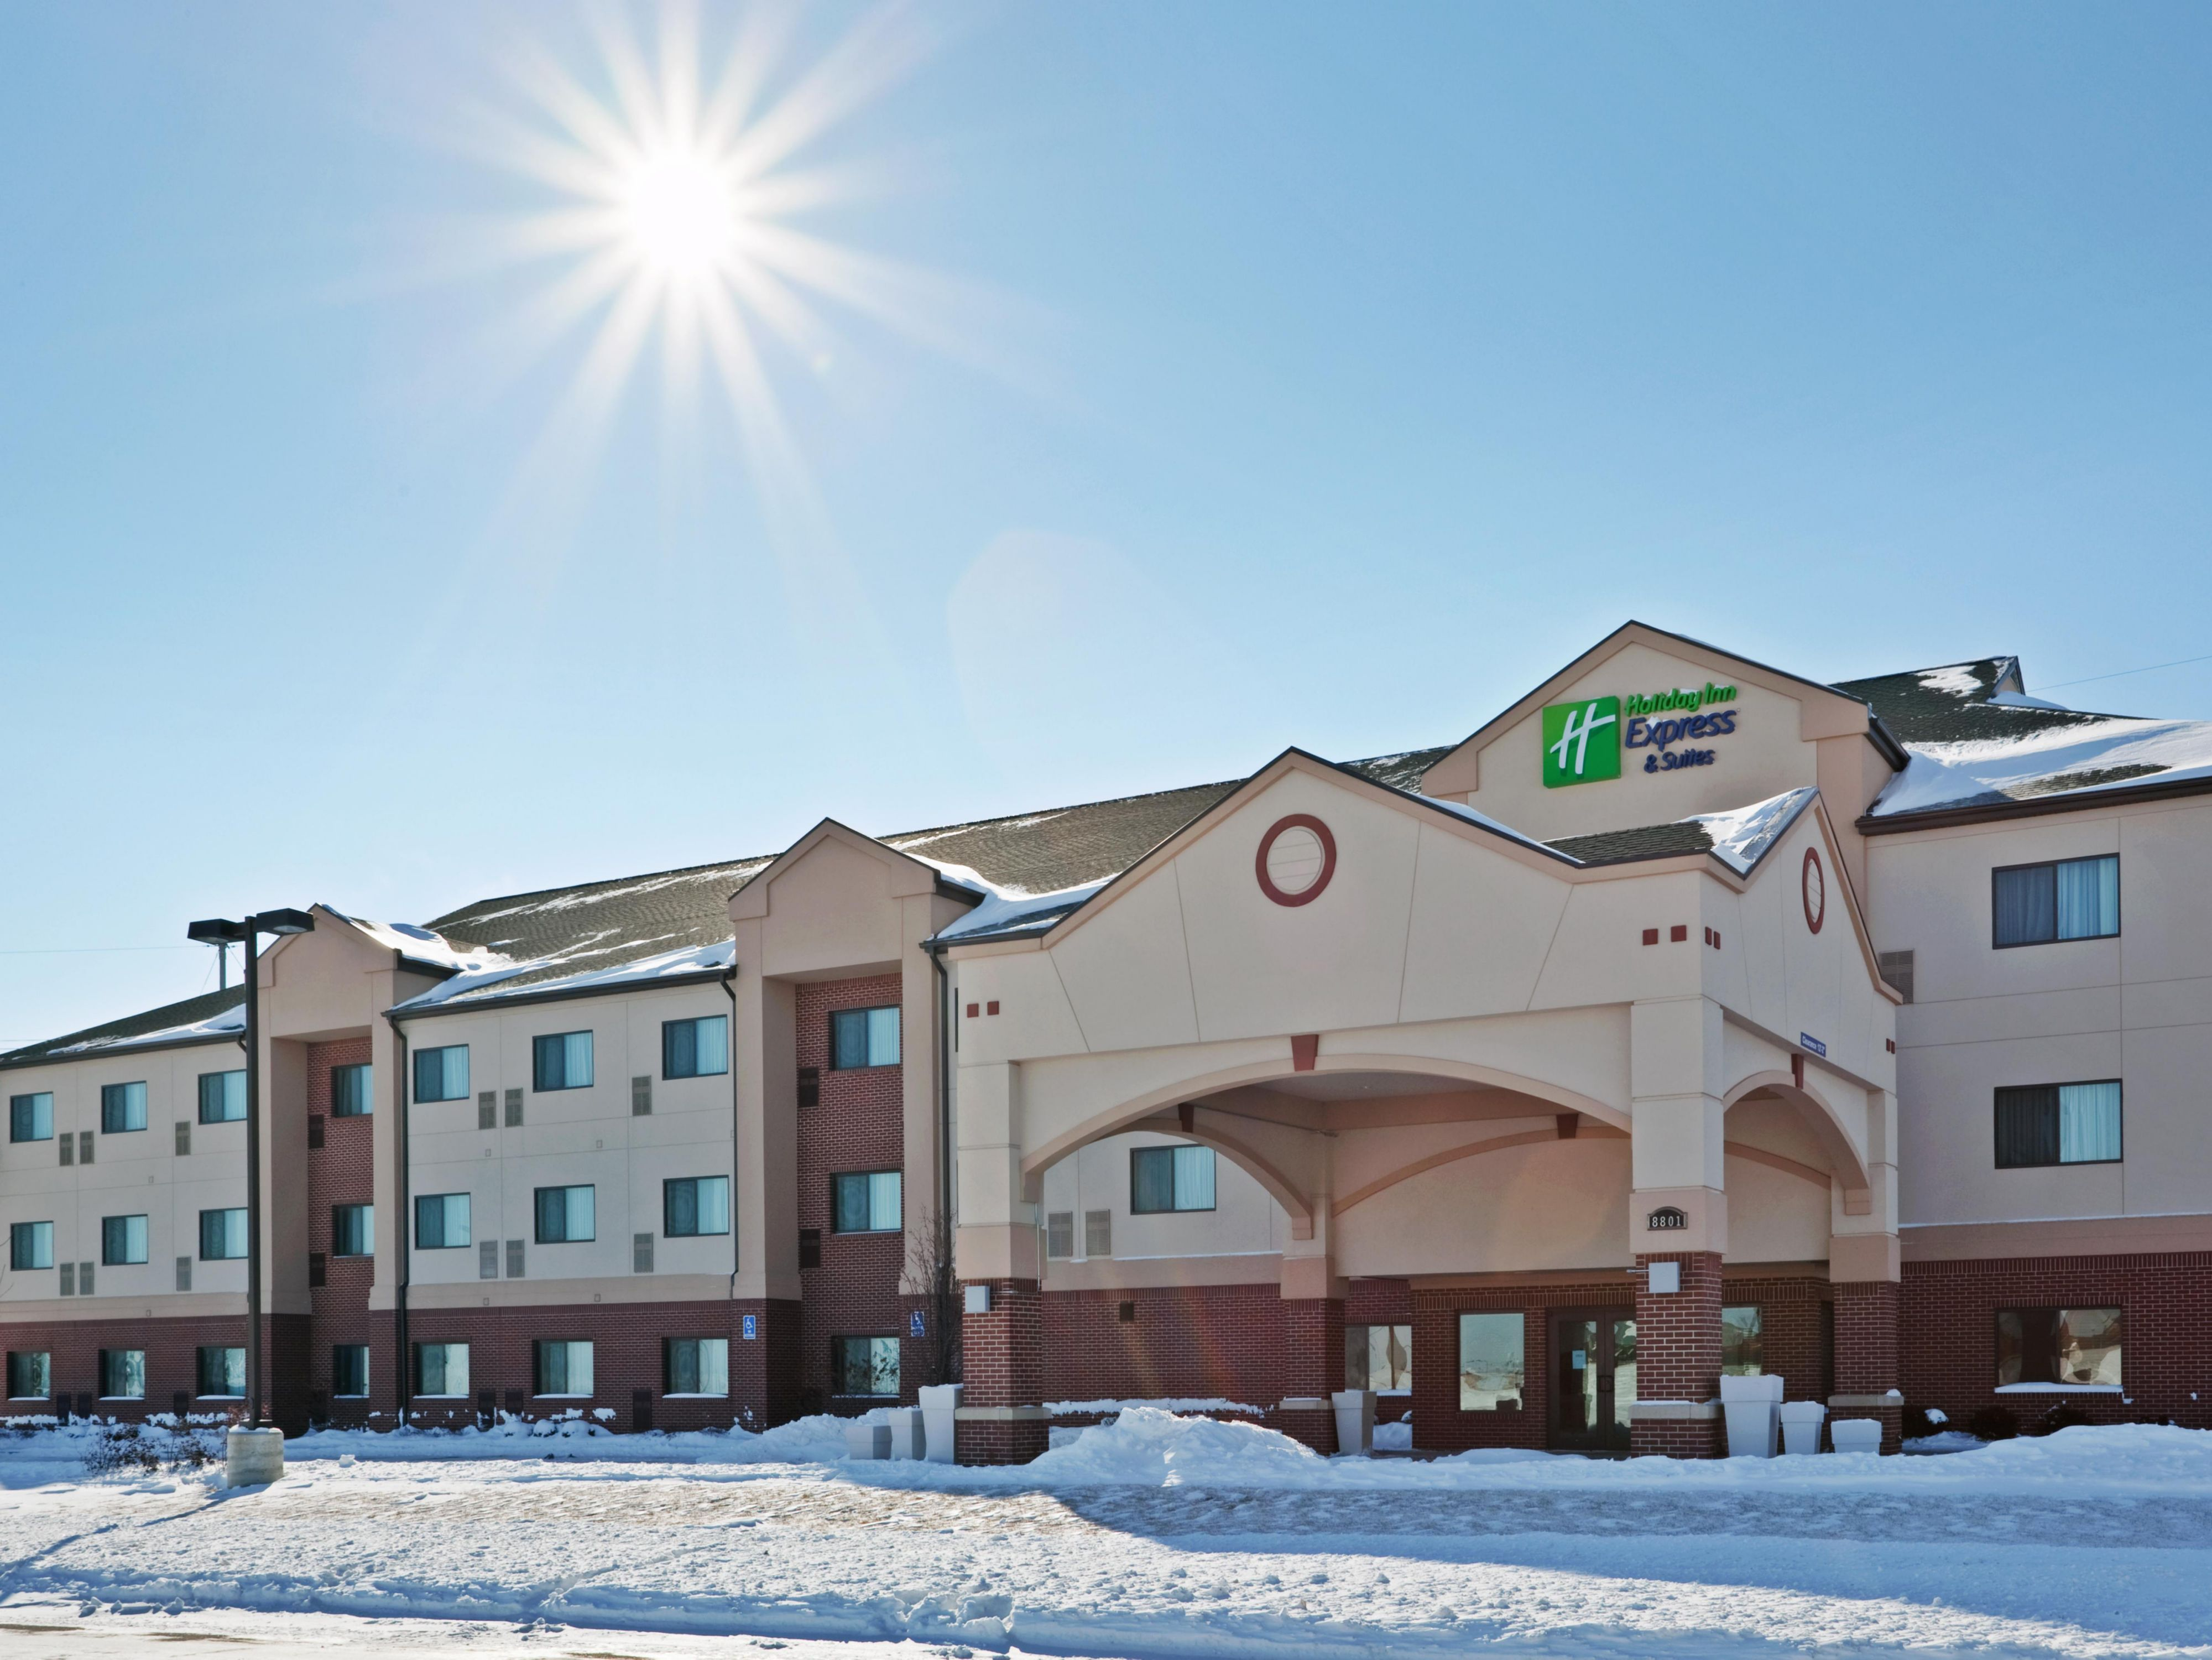 hotel stay suites candlewood extended us en in lincoln ne hoteldetail hotels lnkcw